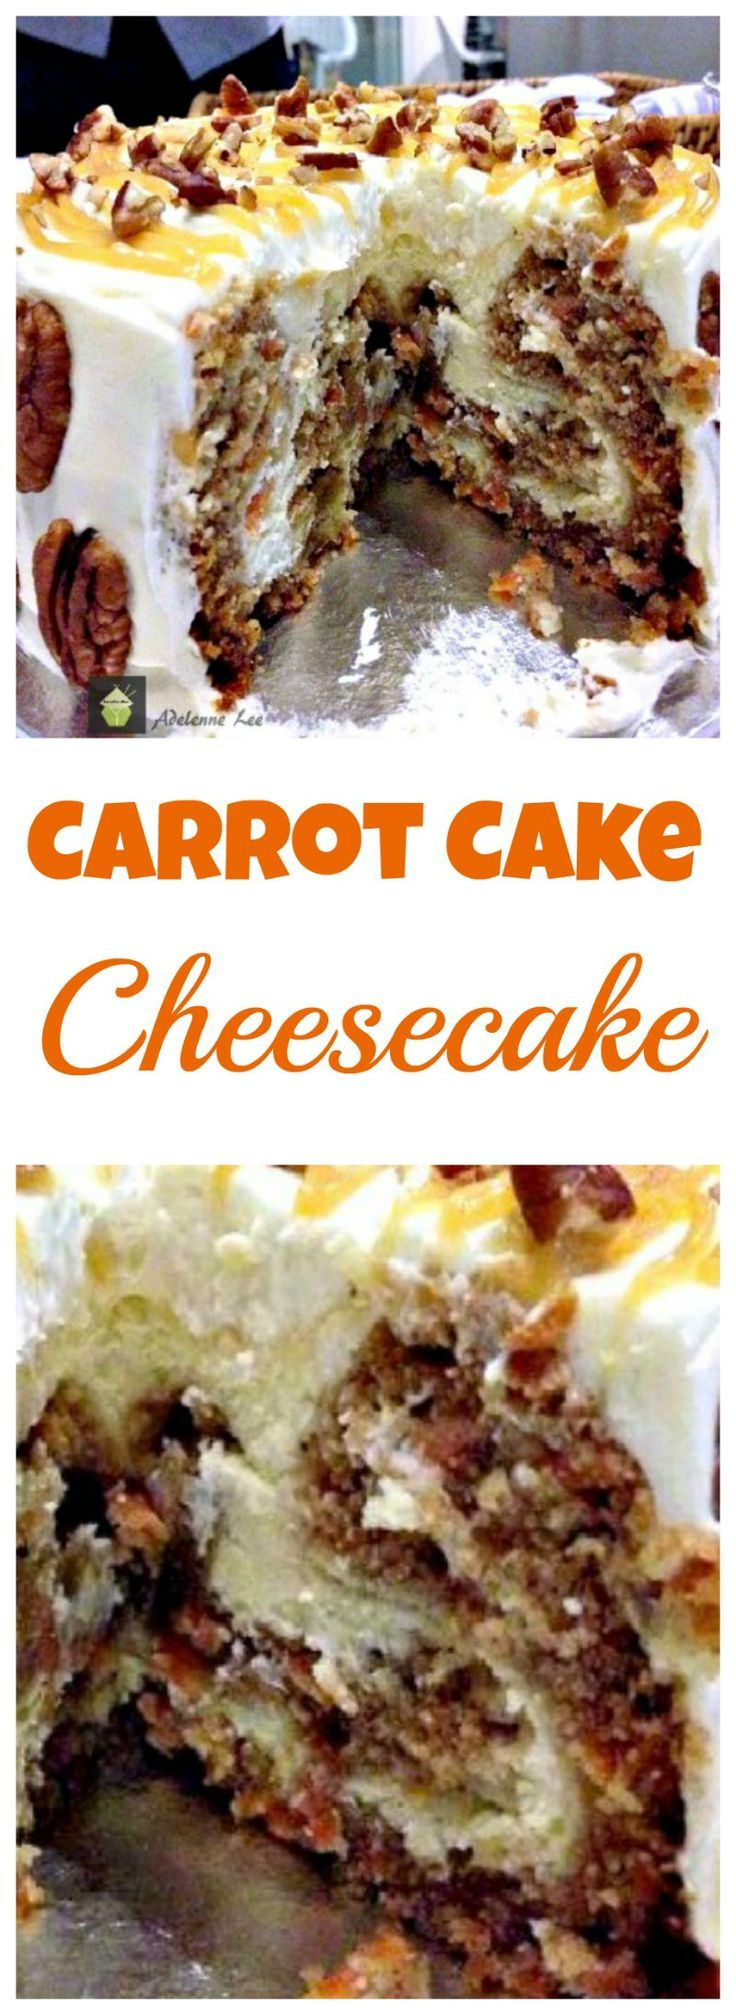 Carrot Cake Cheesecake. Simply a Show Stopping Wow! Thanksgiving & Christmas Collection. | Lovefoodies.com